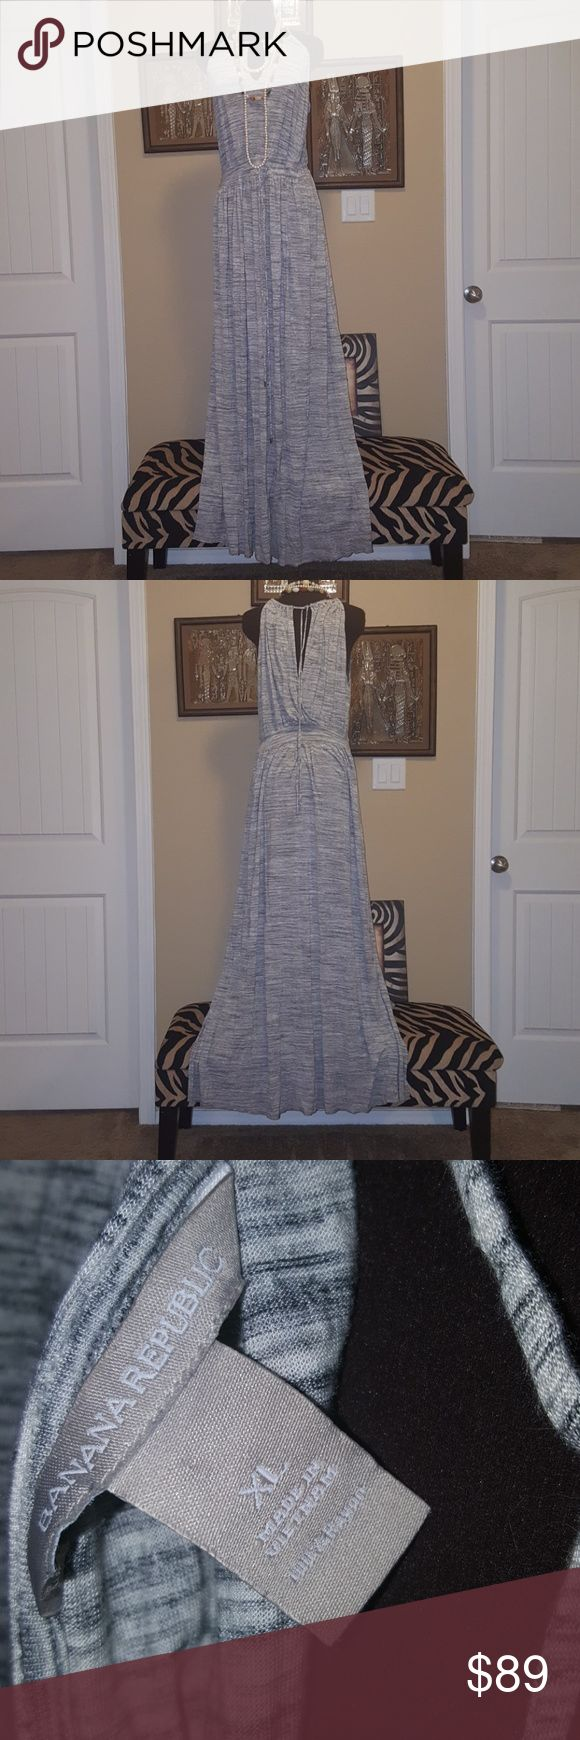 """Banana Republic Maxi Dress Size XL Gorgeous Maxi Dress... This is an extra long Maxi I am 5'-11"""" and it hits the floor without heels on me...FINAL MARKDOWN Banana Republic Dresses Maxi"""